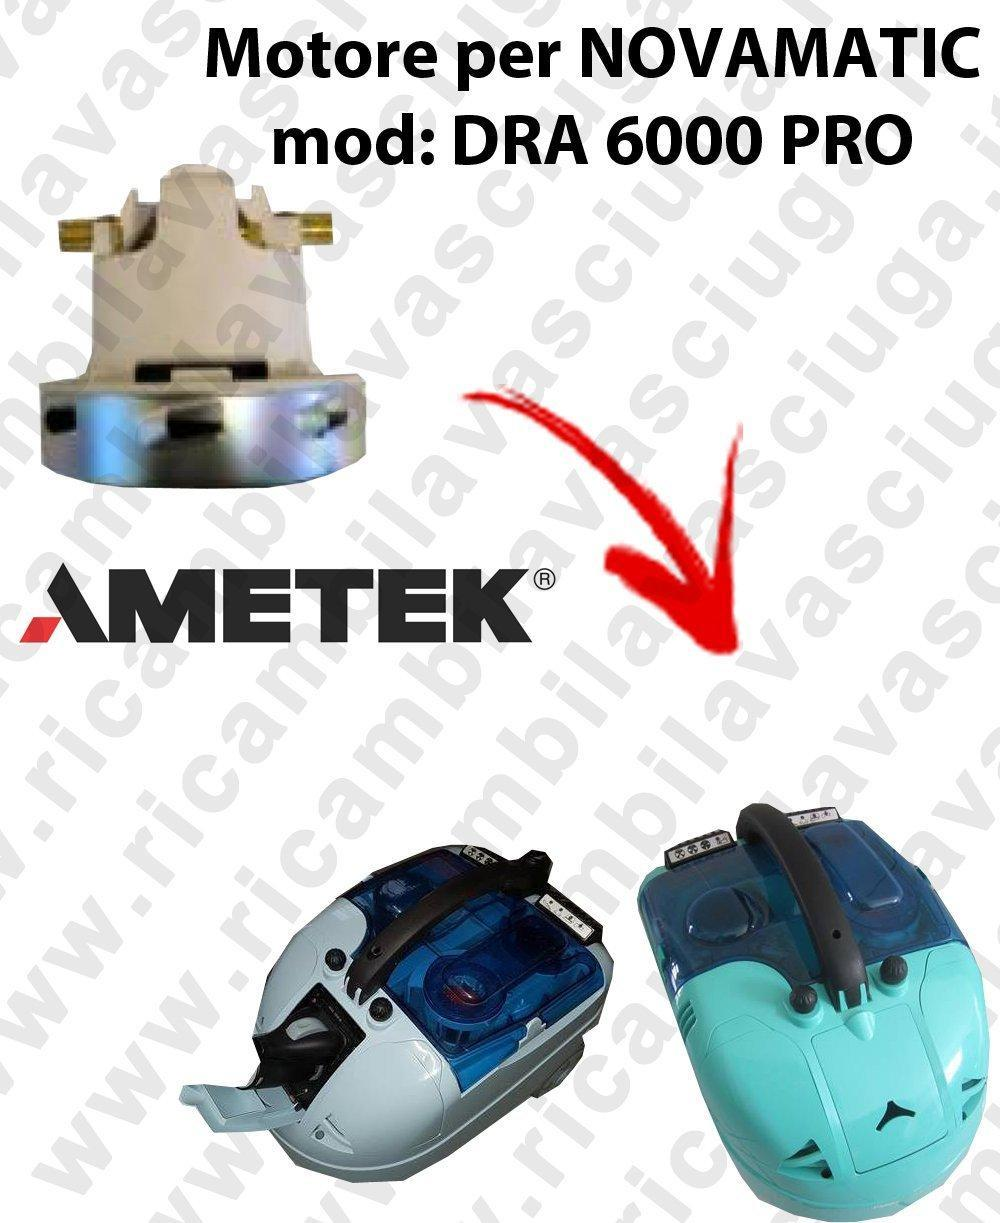 DRA 6000 PRO AMETEK Vacuum motor for vacuum cleaner NOVAMATIC